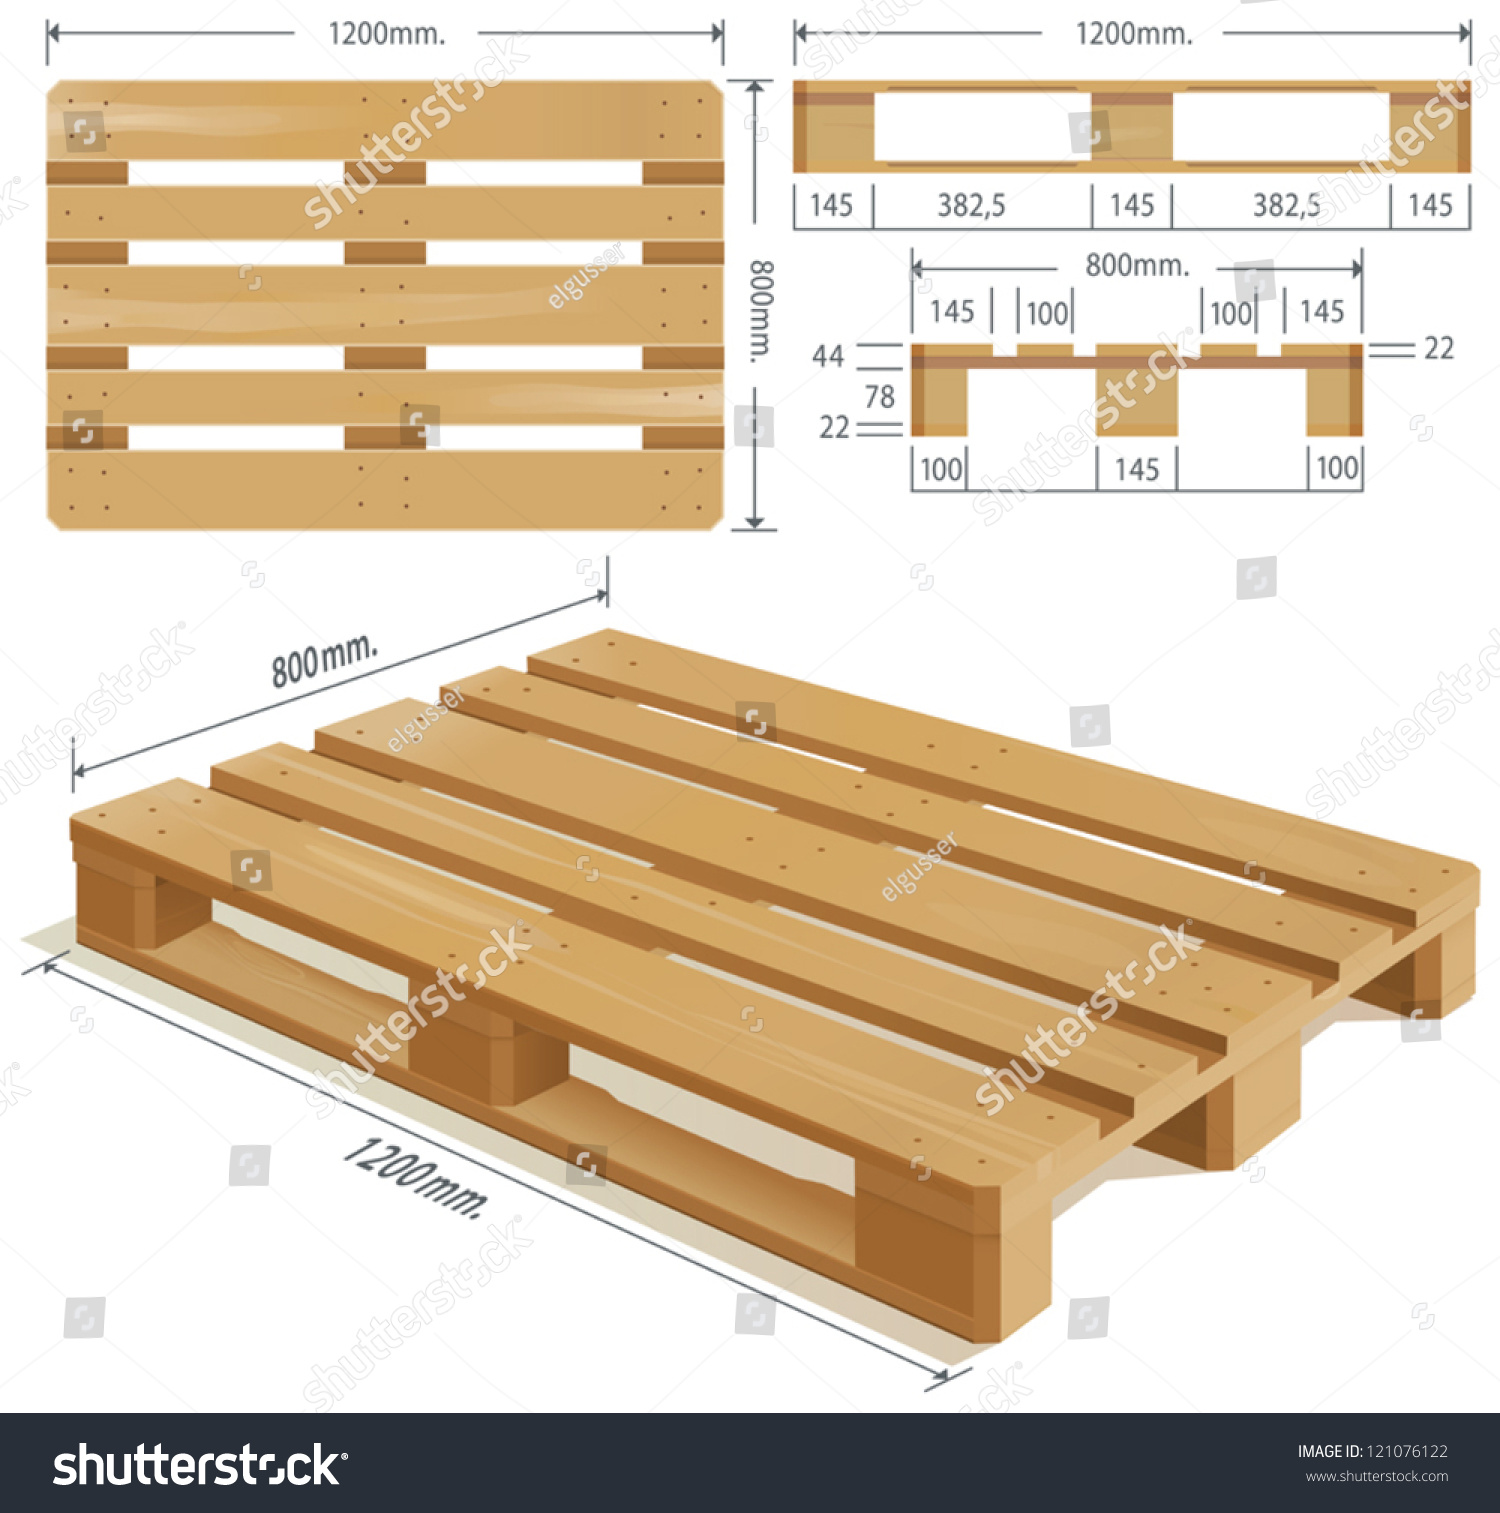 Wooden Pallet Perspective Front Side View Stock Vector ...